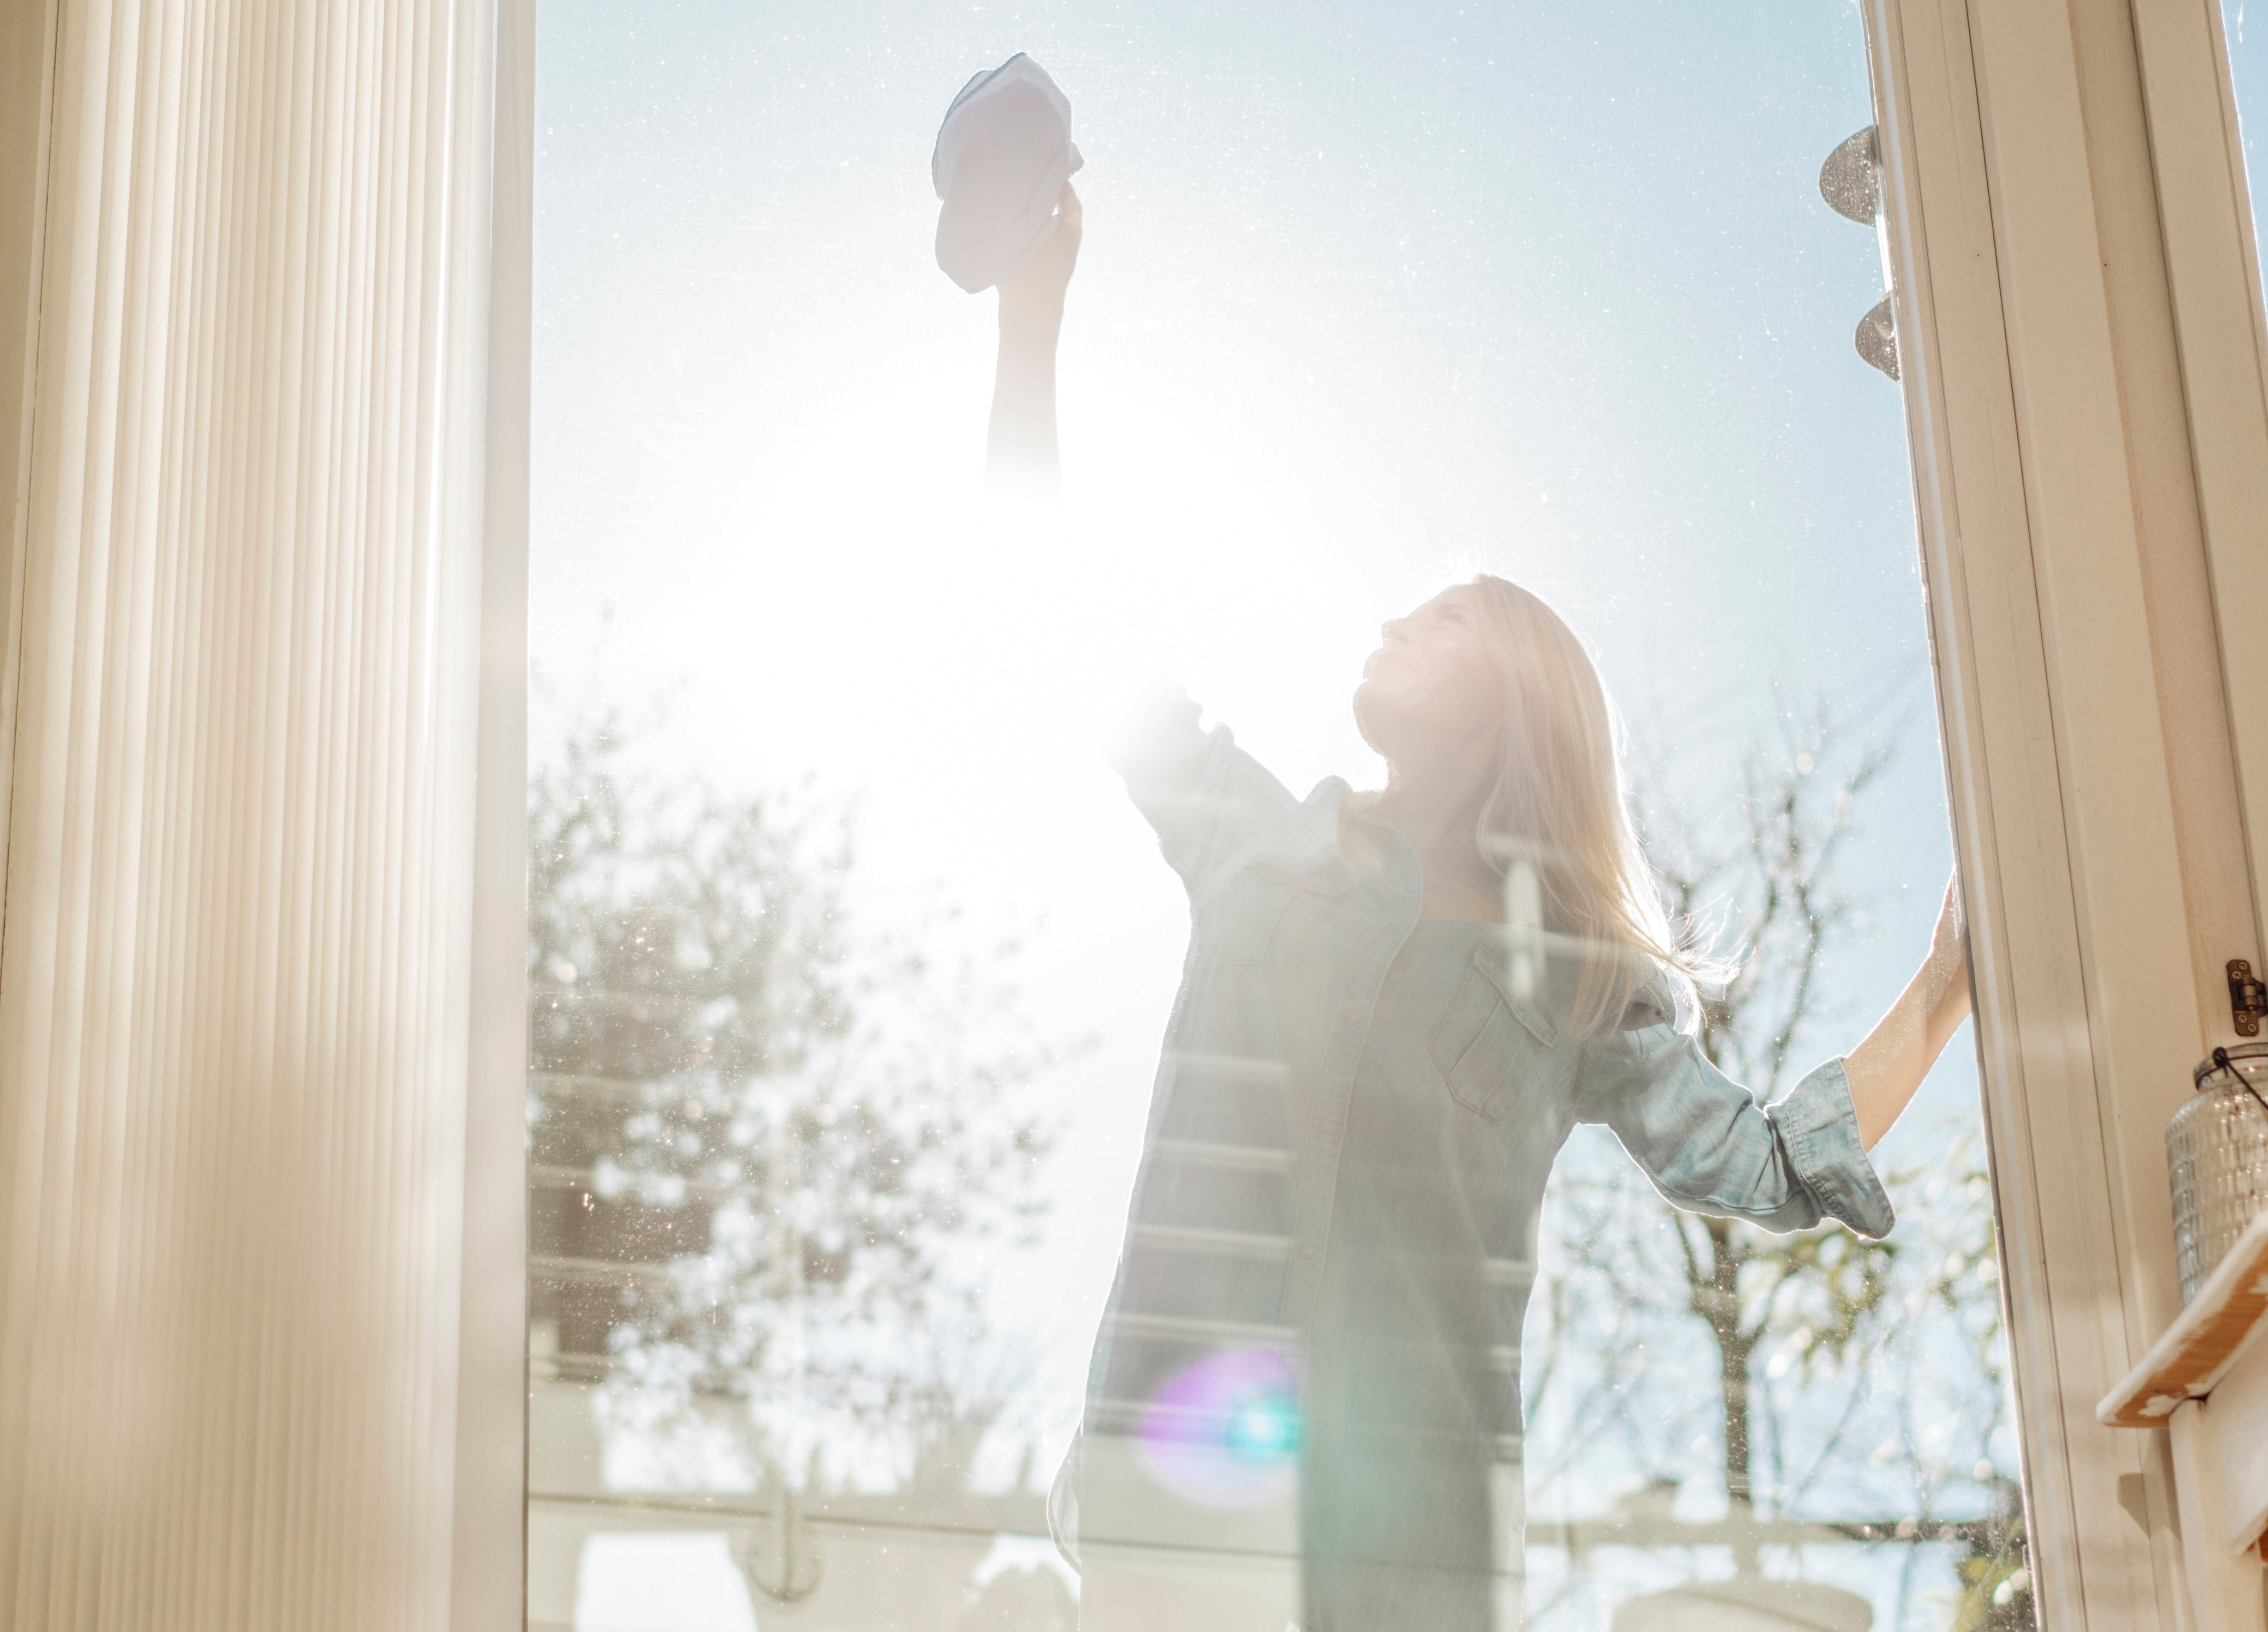 The Best Way to Get Streak-Free Windows? Well, It Doesn't Involve Windex…